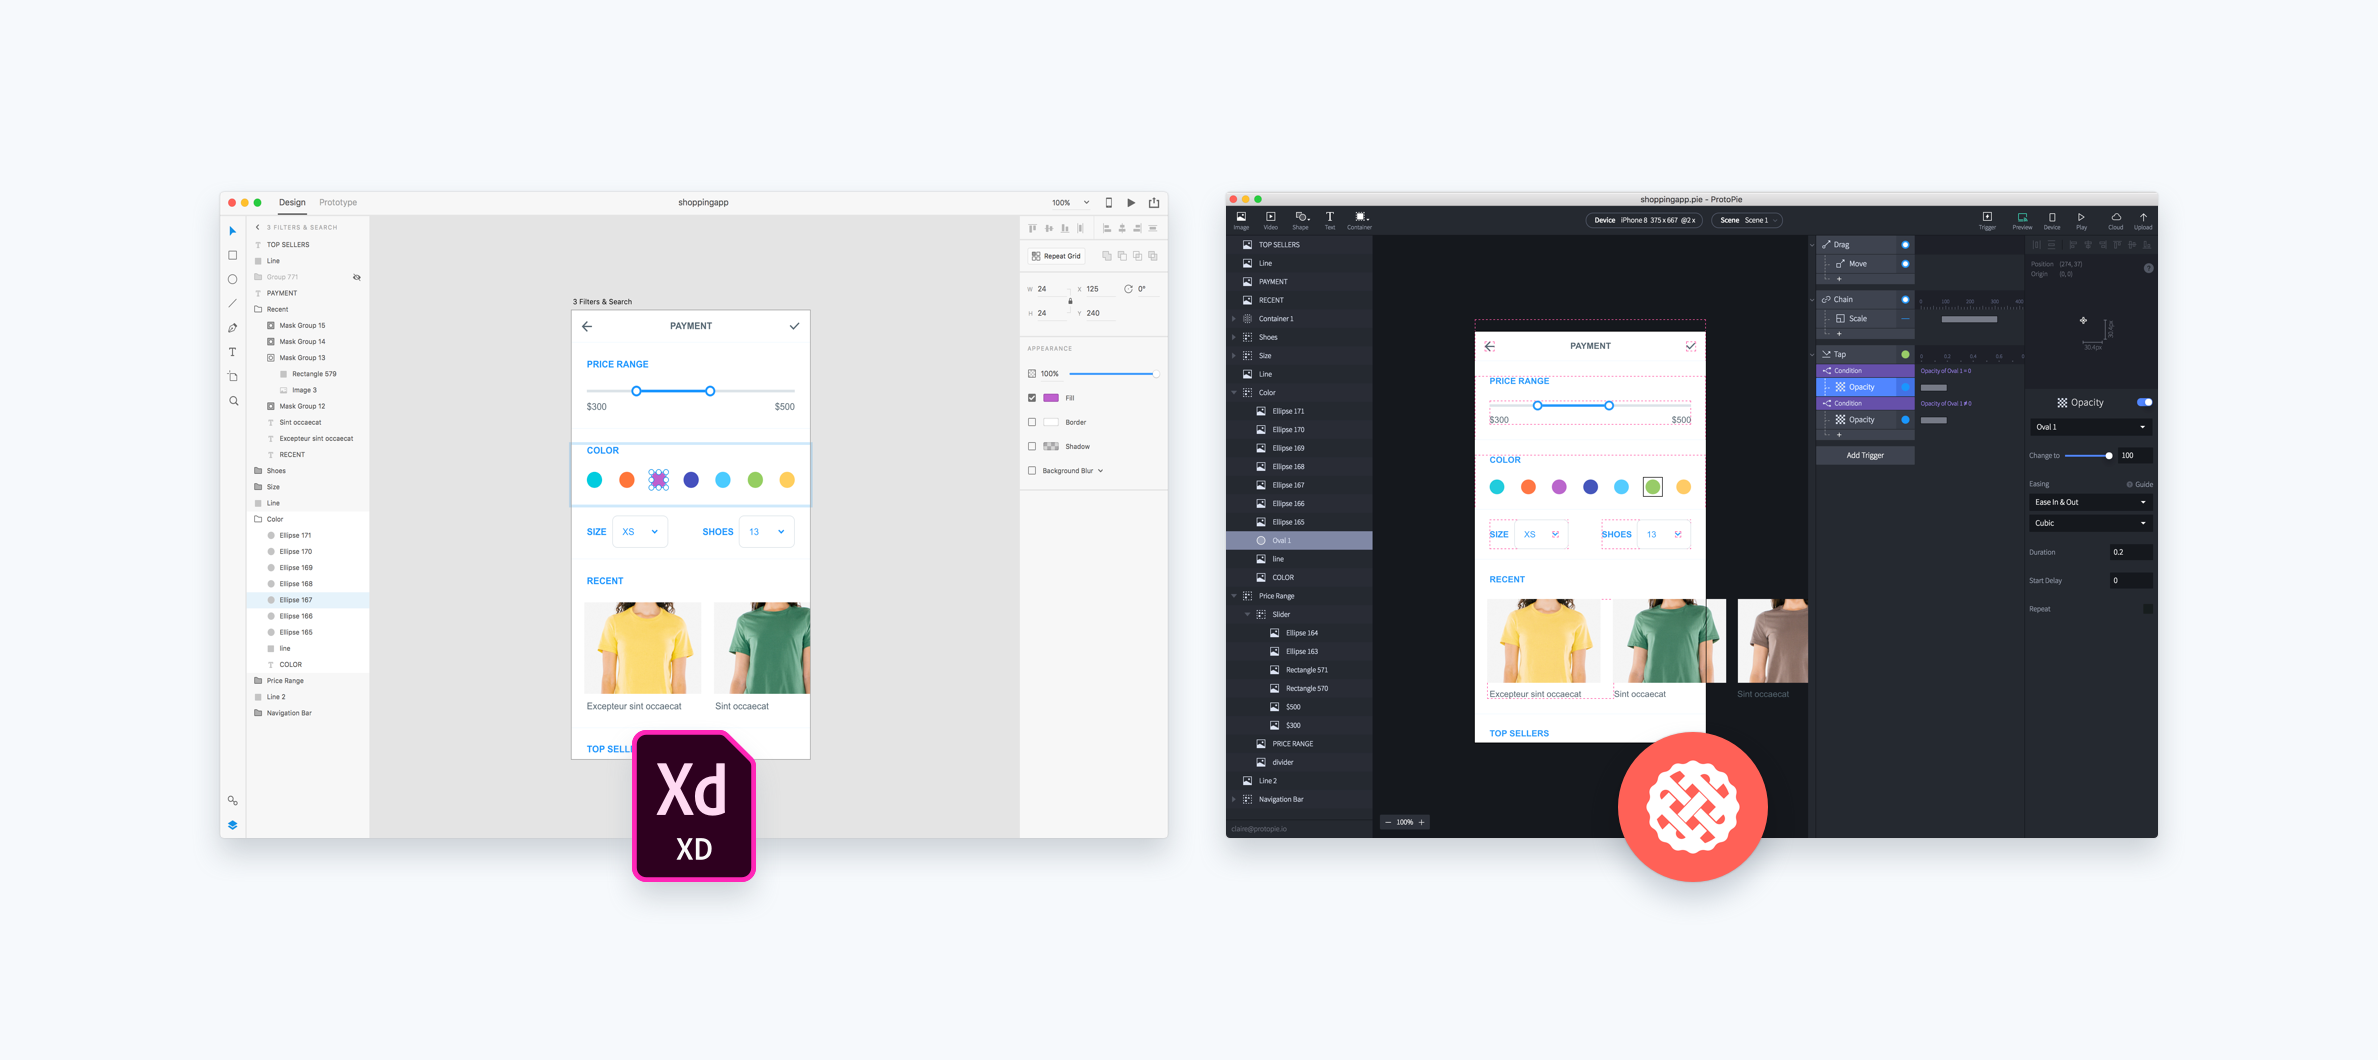 download adobe xd for windows 10 free